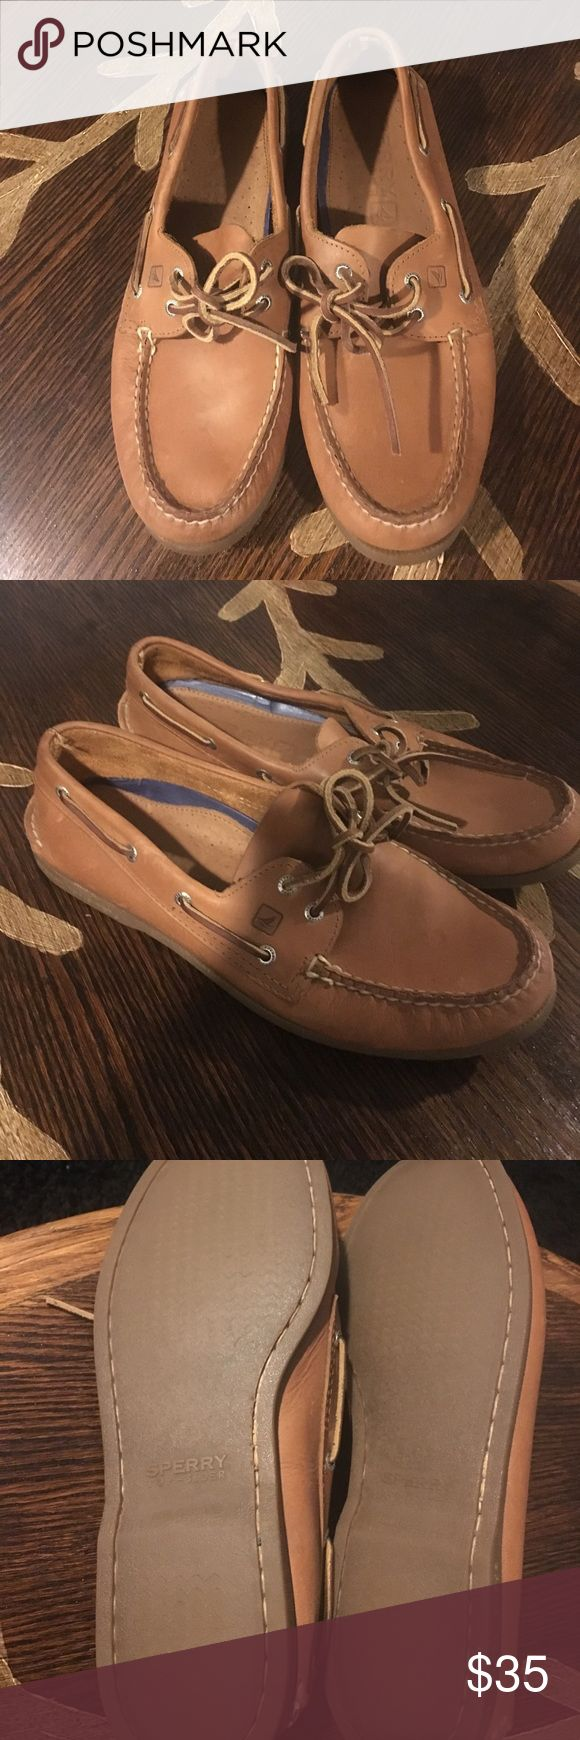 Sperry Top Sider Men's Sperry Leather shoes. Classy dress shoes. Bought them for an event. Only worn them once! Like new! Great price. Sperry Shoes Loafers & Slip-Ons